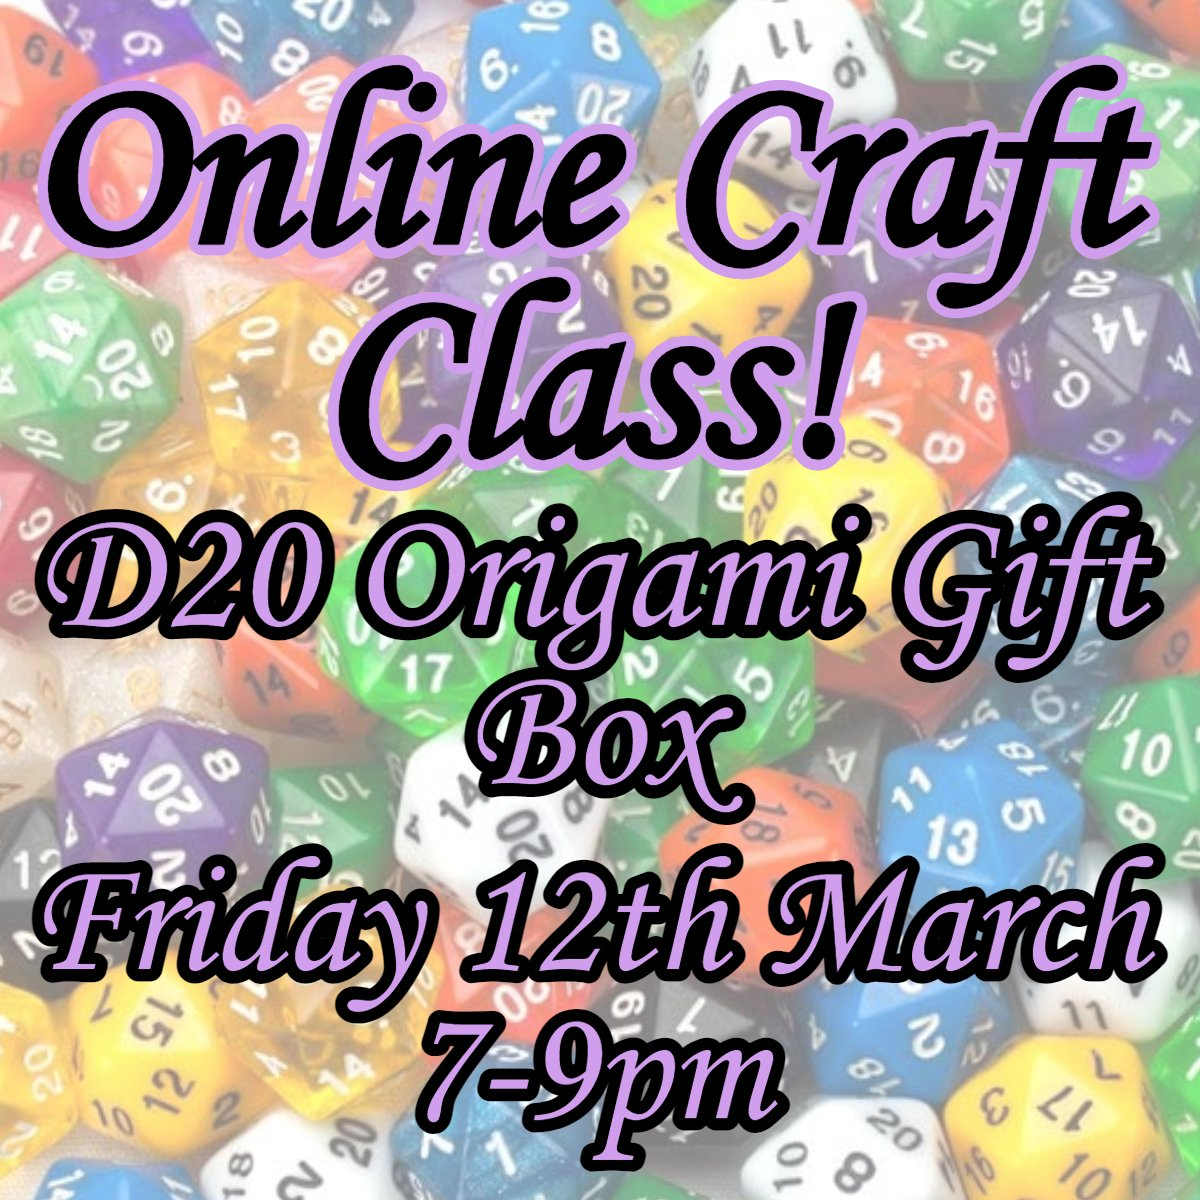 🎉D20 Origami Gift Box Craft Class🎉  #CraftClass - 7pm Fri 12th Mar!  Not only will you #create a #delightful #D20 #GiftBox, 🎁 but if you get a #grabbag, you'll get a 7 piece set of #RPG #dice to put in it! 🤩  Get your #craft on & join the #fun! 🎲  🎲